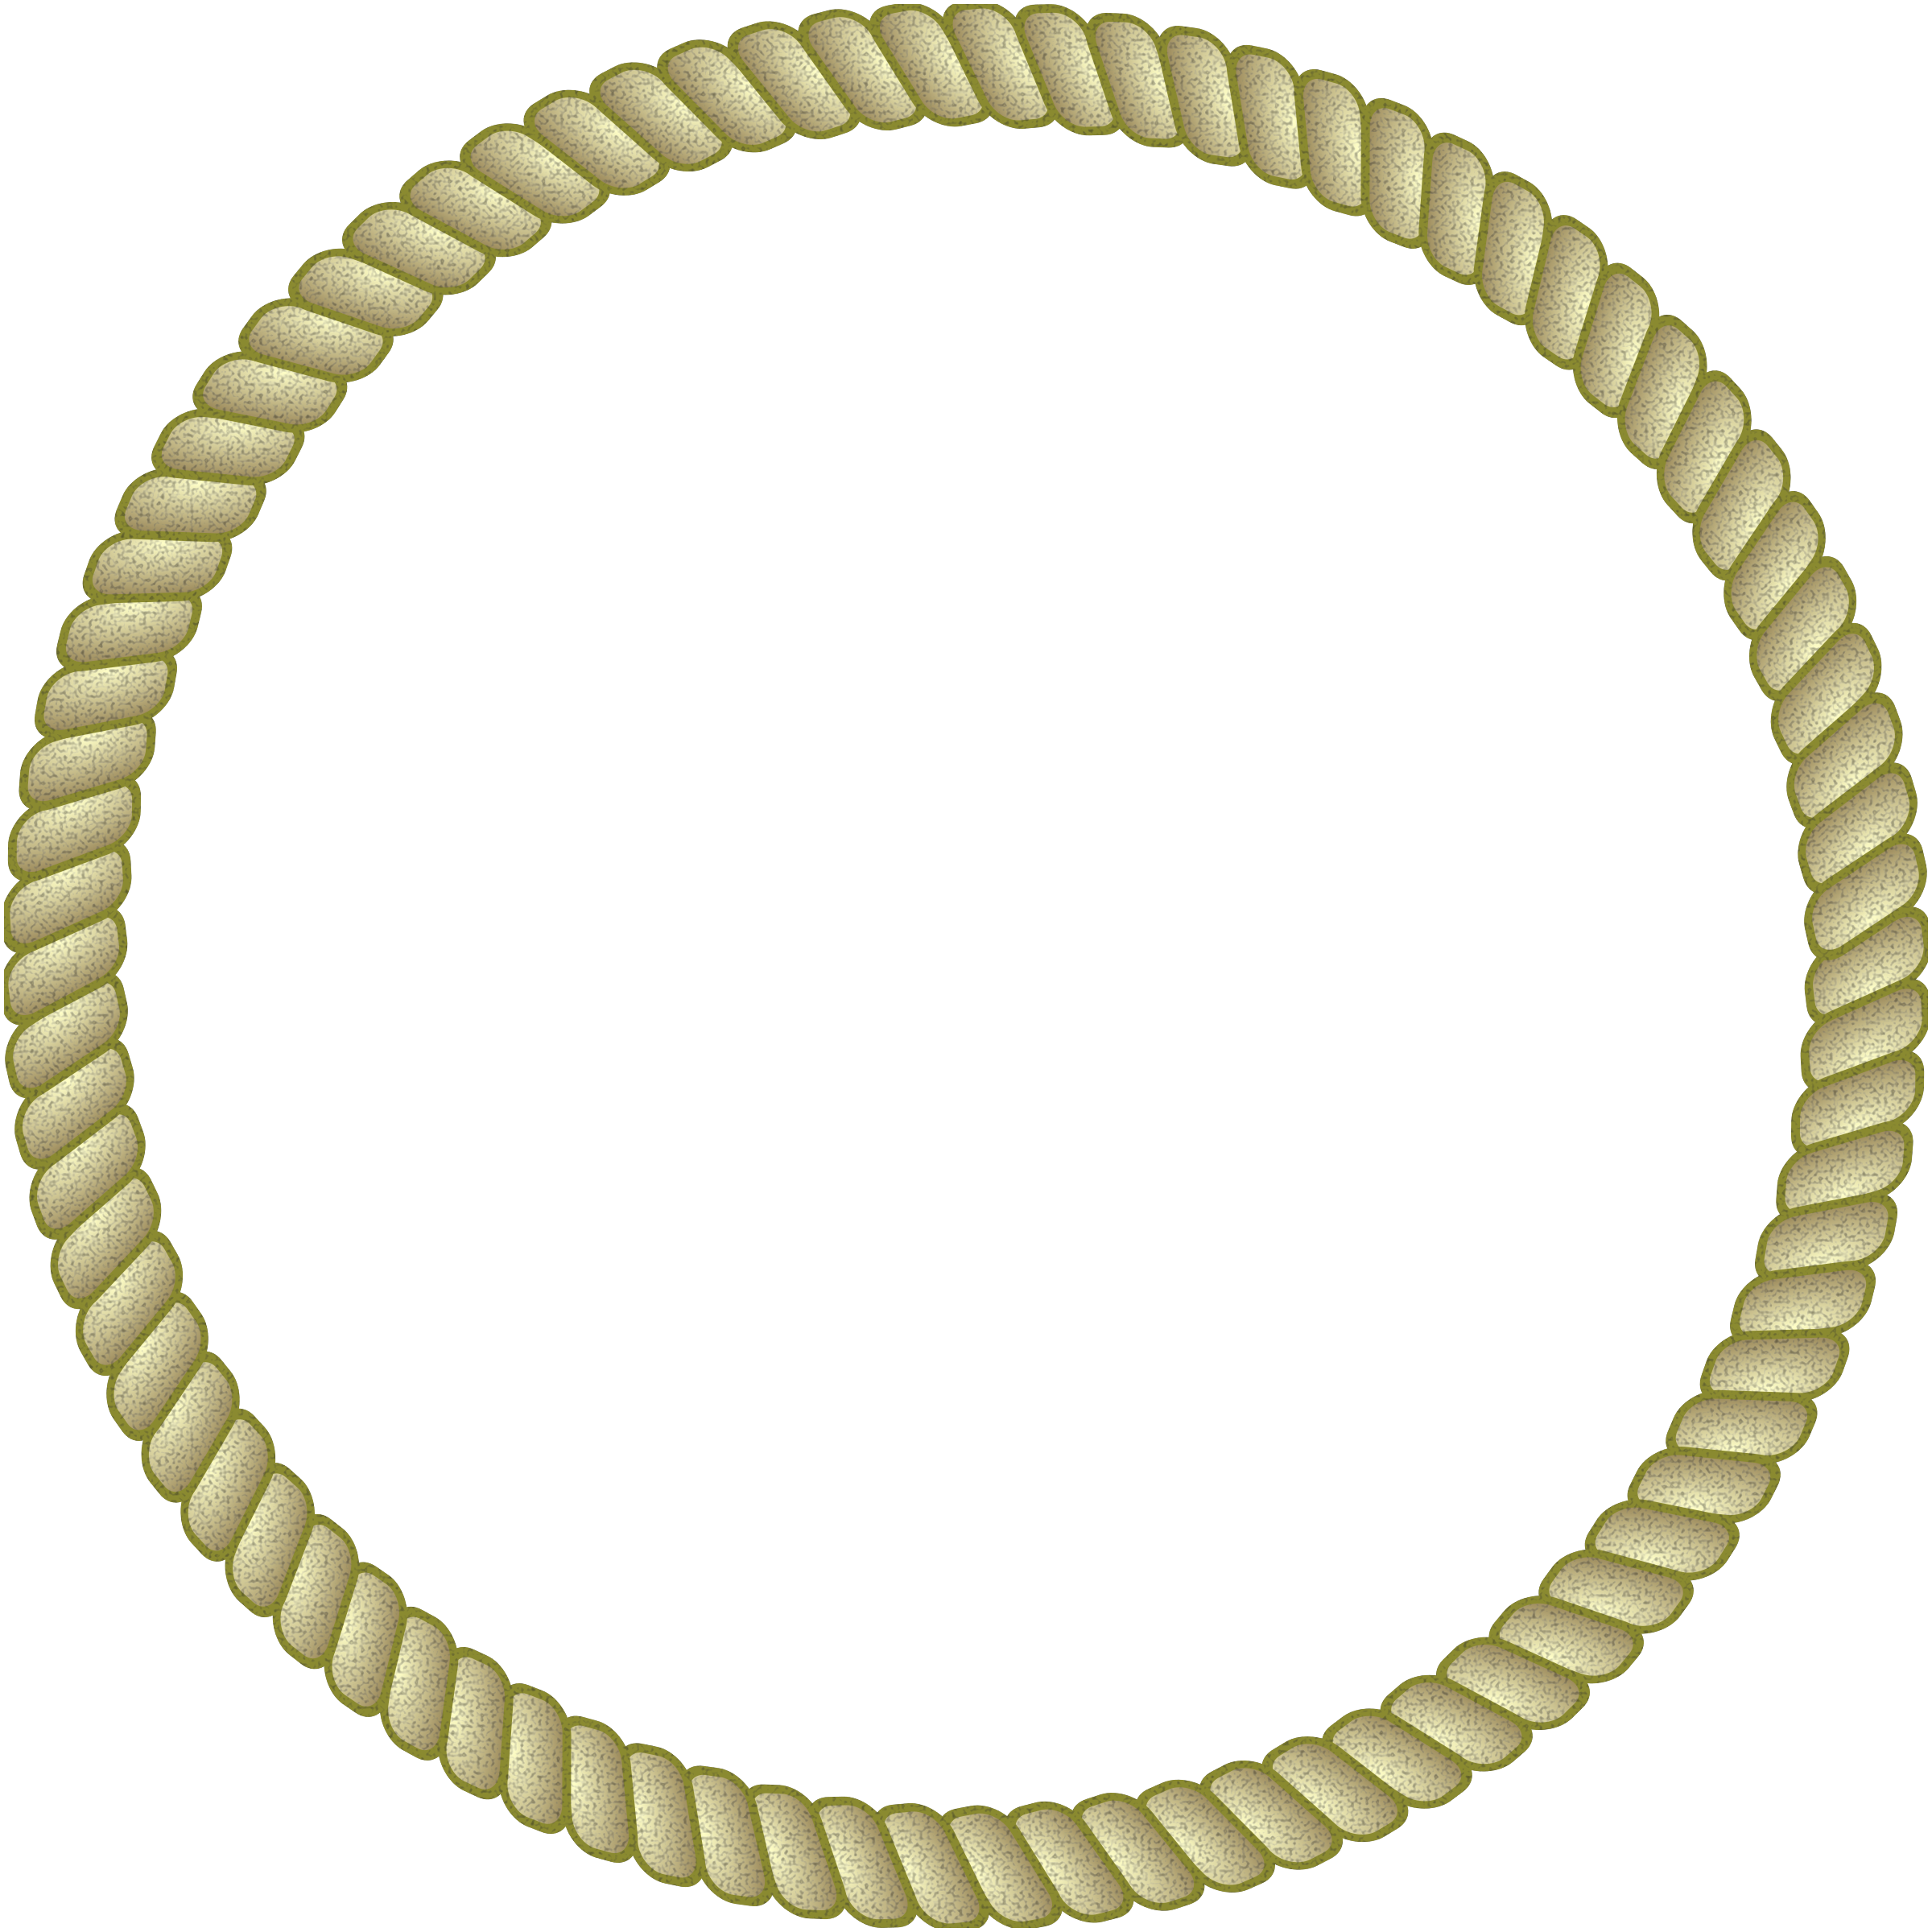 Clipart round border big. Rope frame png